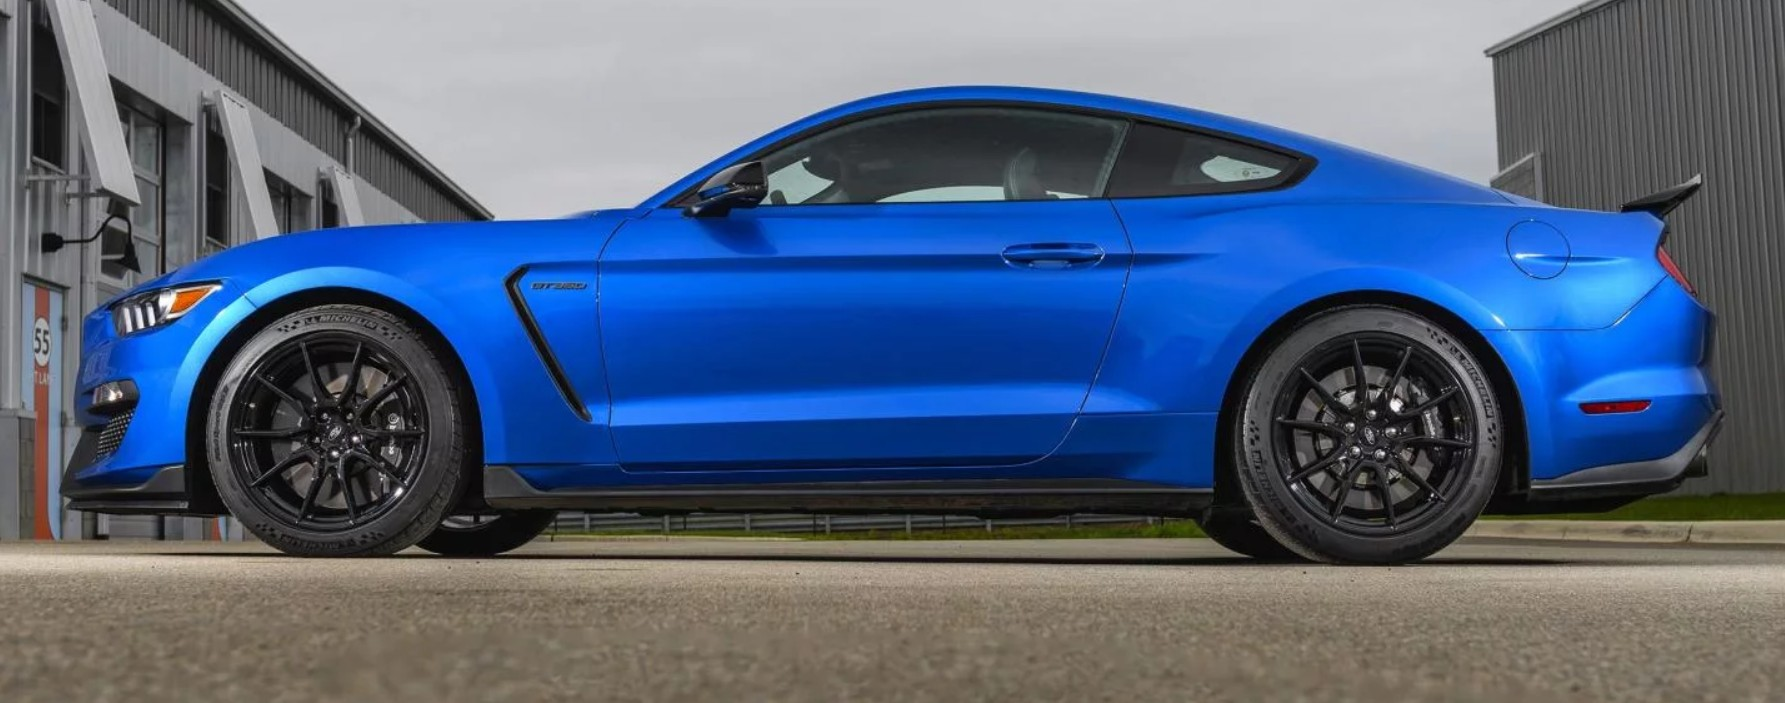 2019-ford-mustanf-shelby-gt350-turnology.jpg